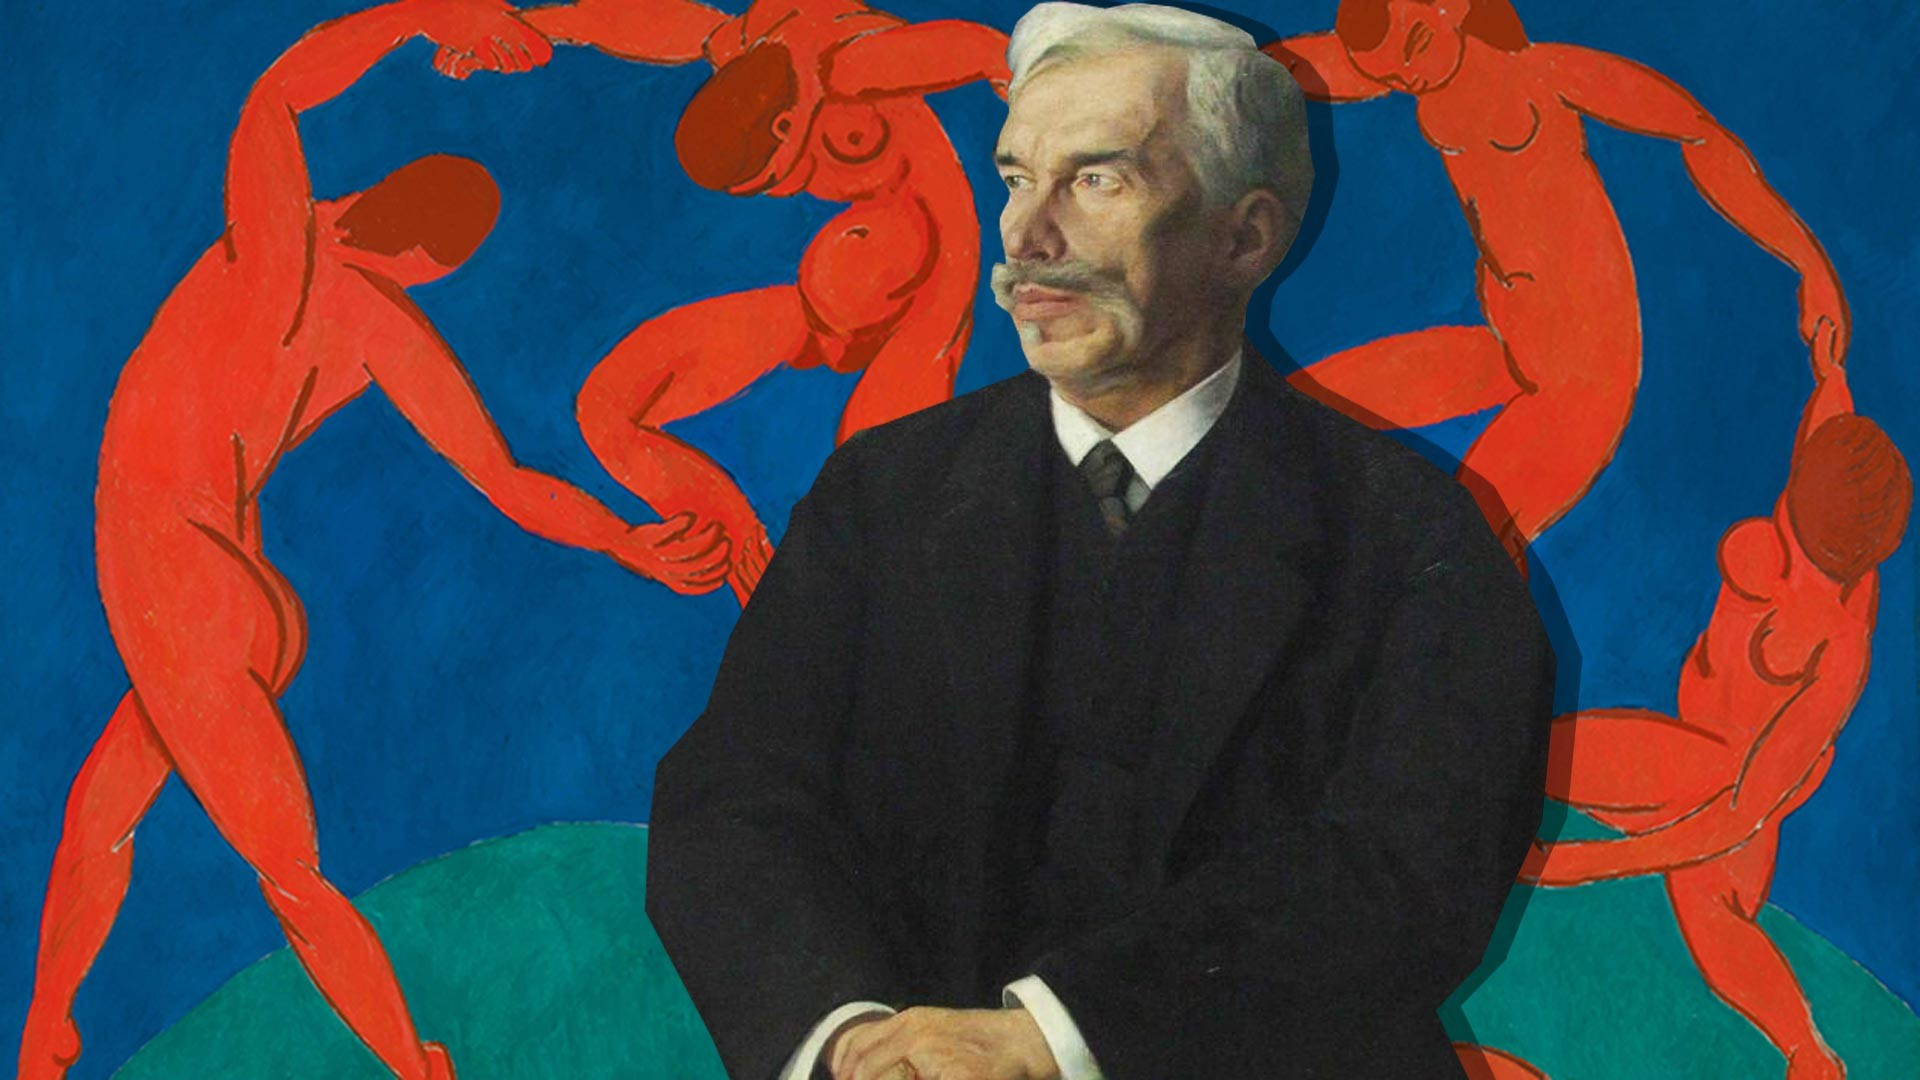 Portrait of Sergei Shchukin; 'Dance' by Henri Matisse from his collection on the background